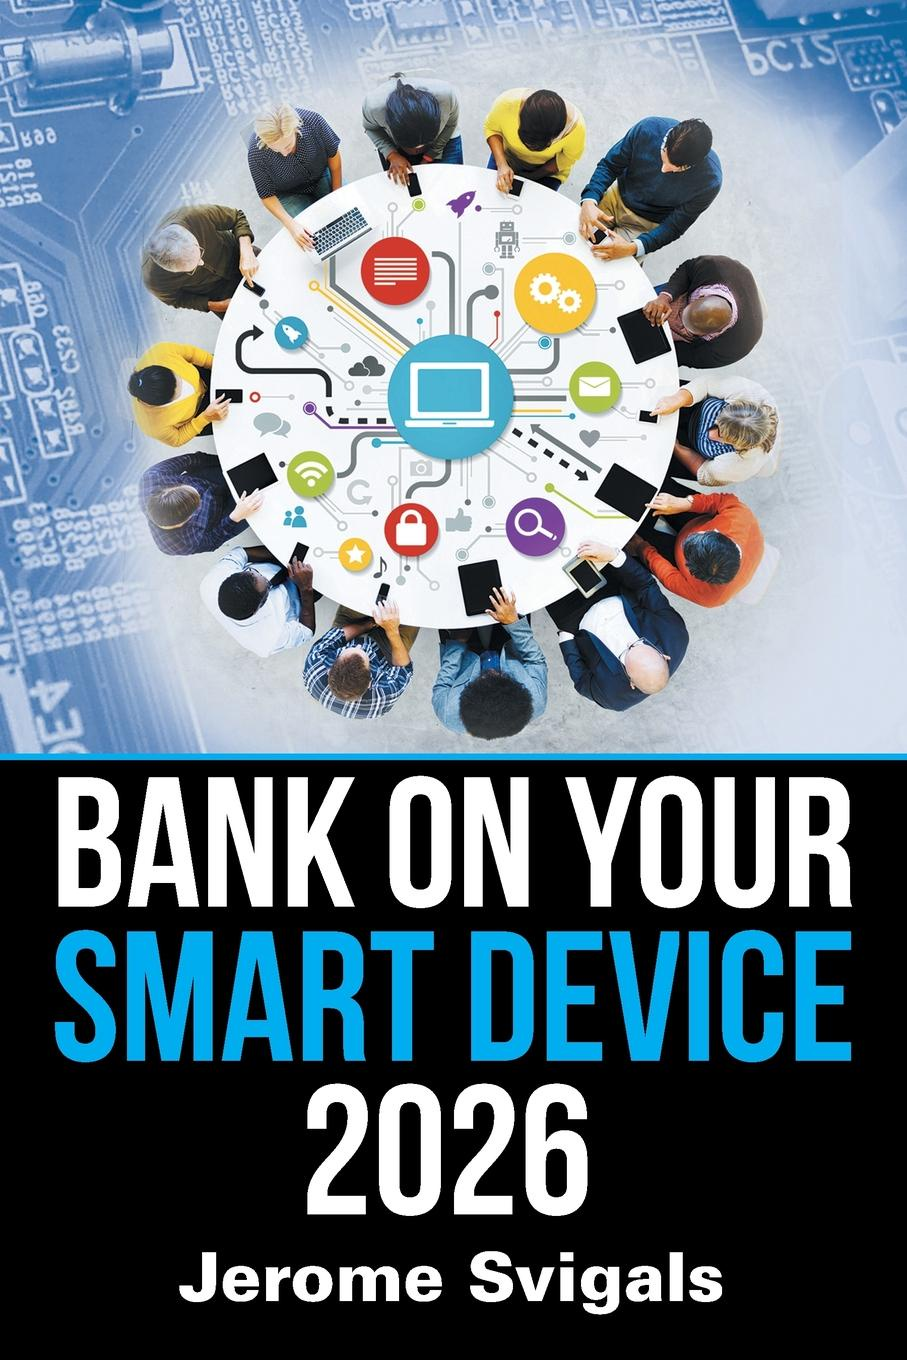 Jerome Svigals Bank on Your Smart Device 2026